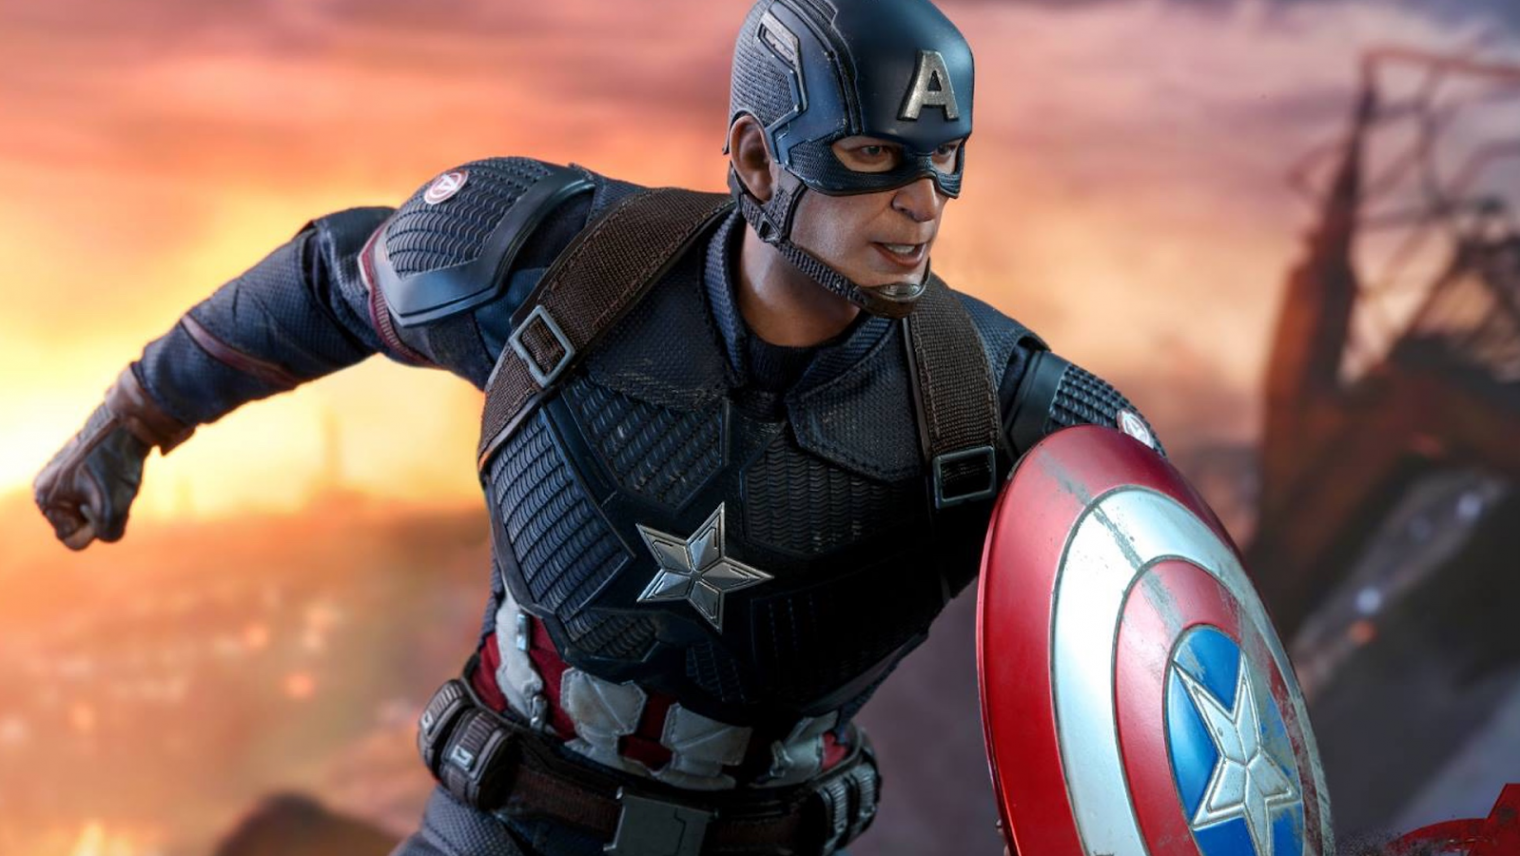 What Would Steve Rogers Do About His Hearing?